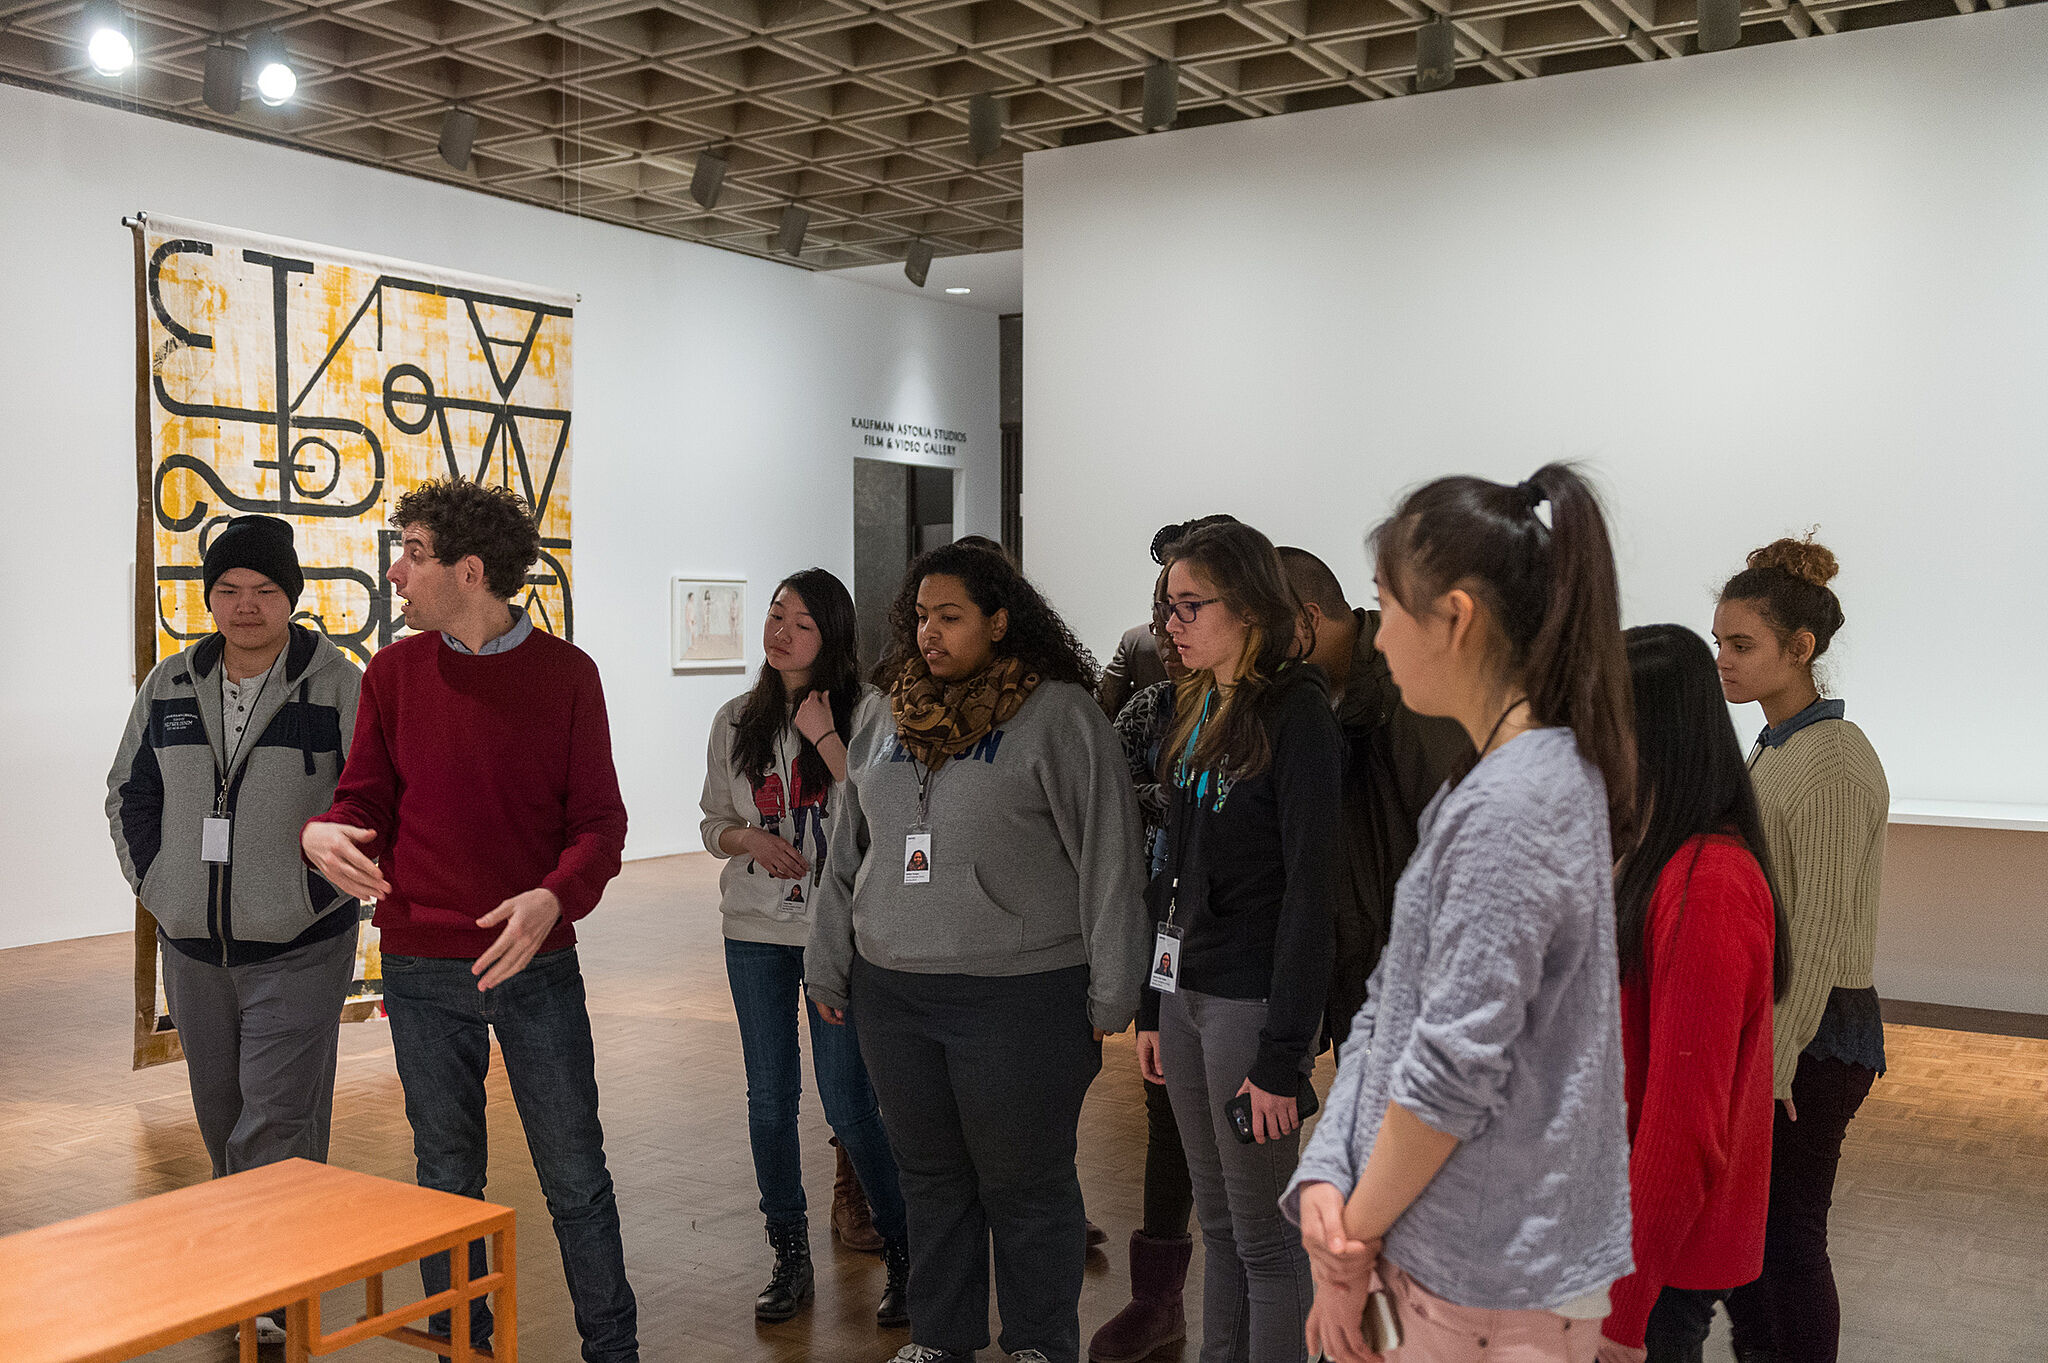 An artist takes a student group on a tour of a gallery.